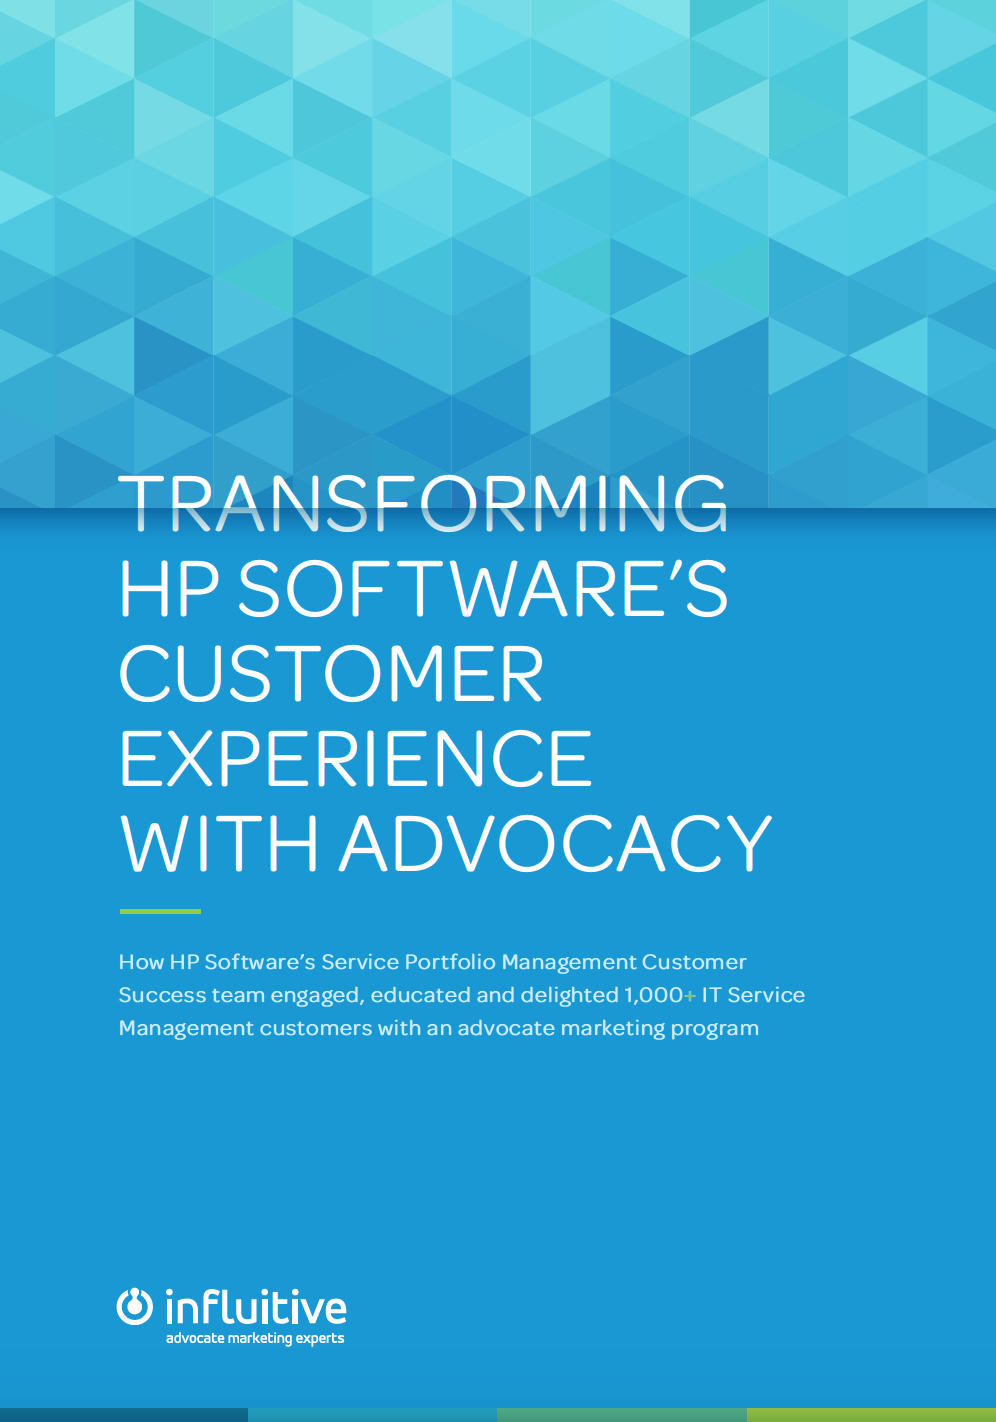 Transforming HP Software's Customer Experience With Advocacy